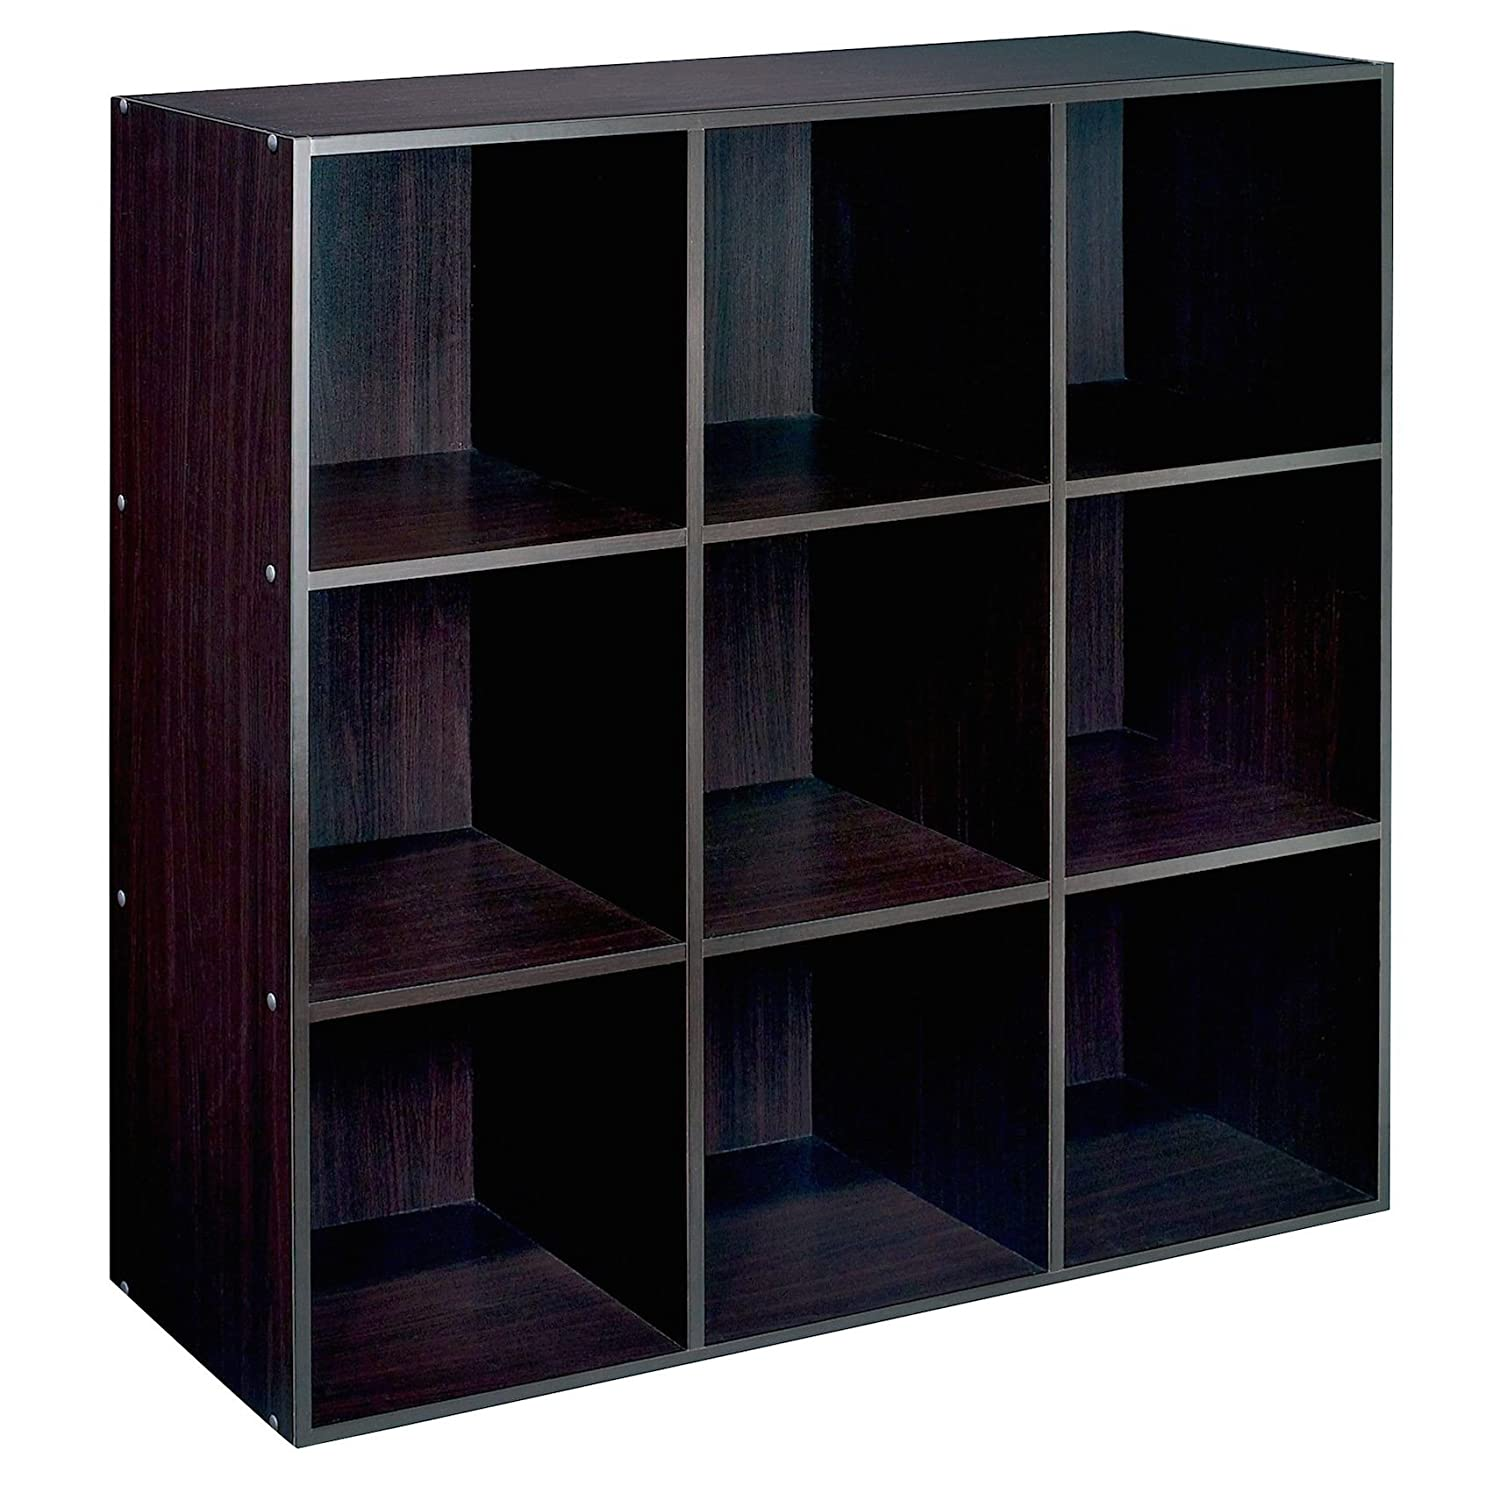 sc 1 st  Amazon.com & Amazon.com : 9 Cube Storage Unit Shelf- Espresso. : Baby